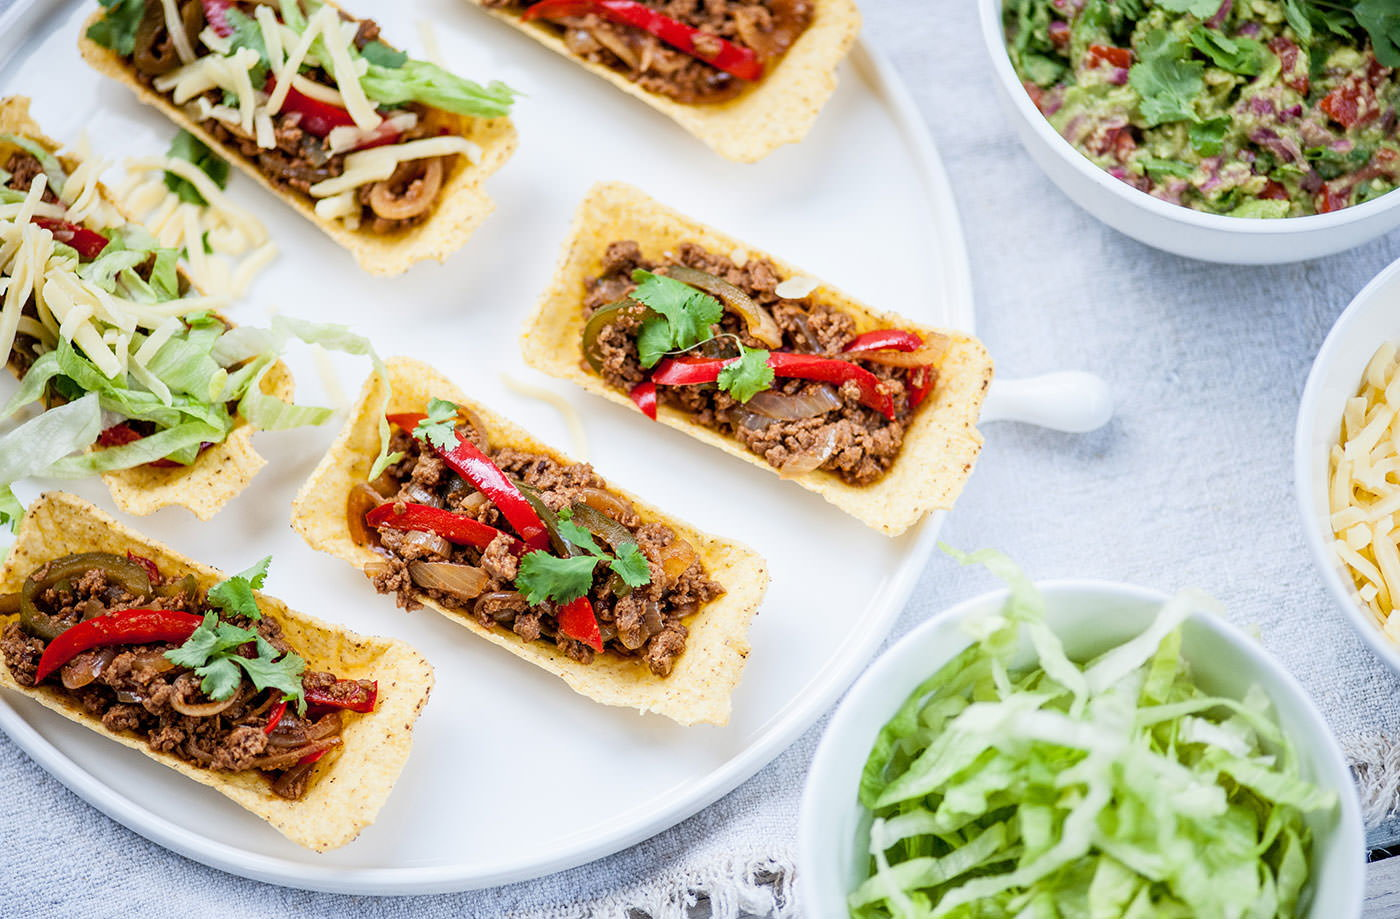 Matthew tomkinson 39 s spicy veggie tacos with guacamole for Classic starter recipes